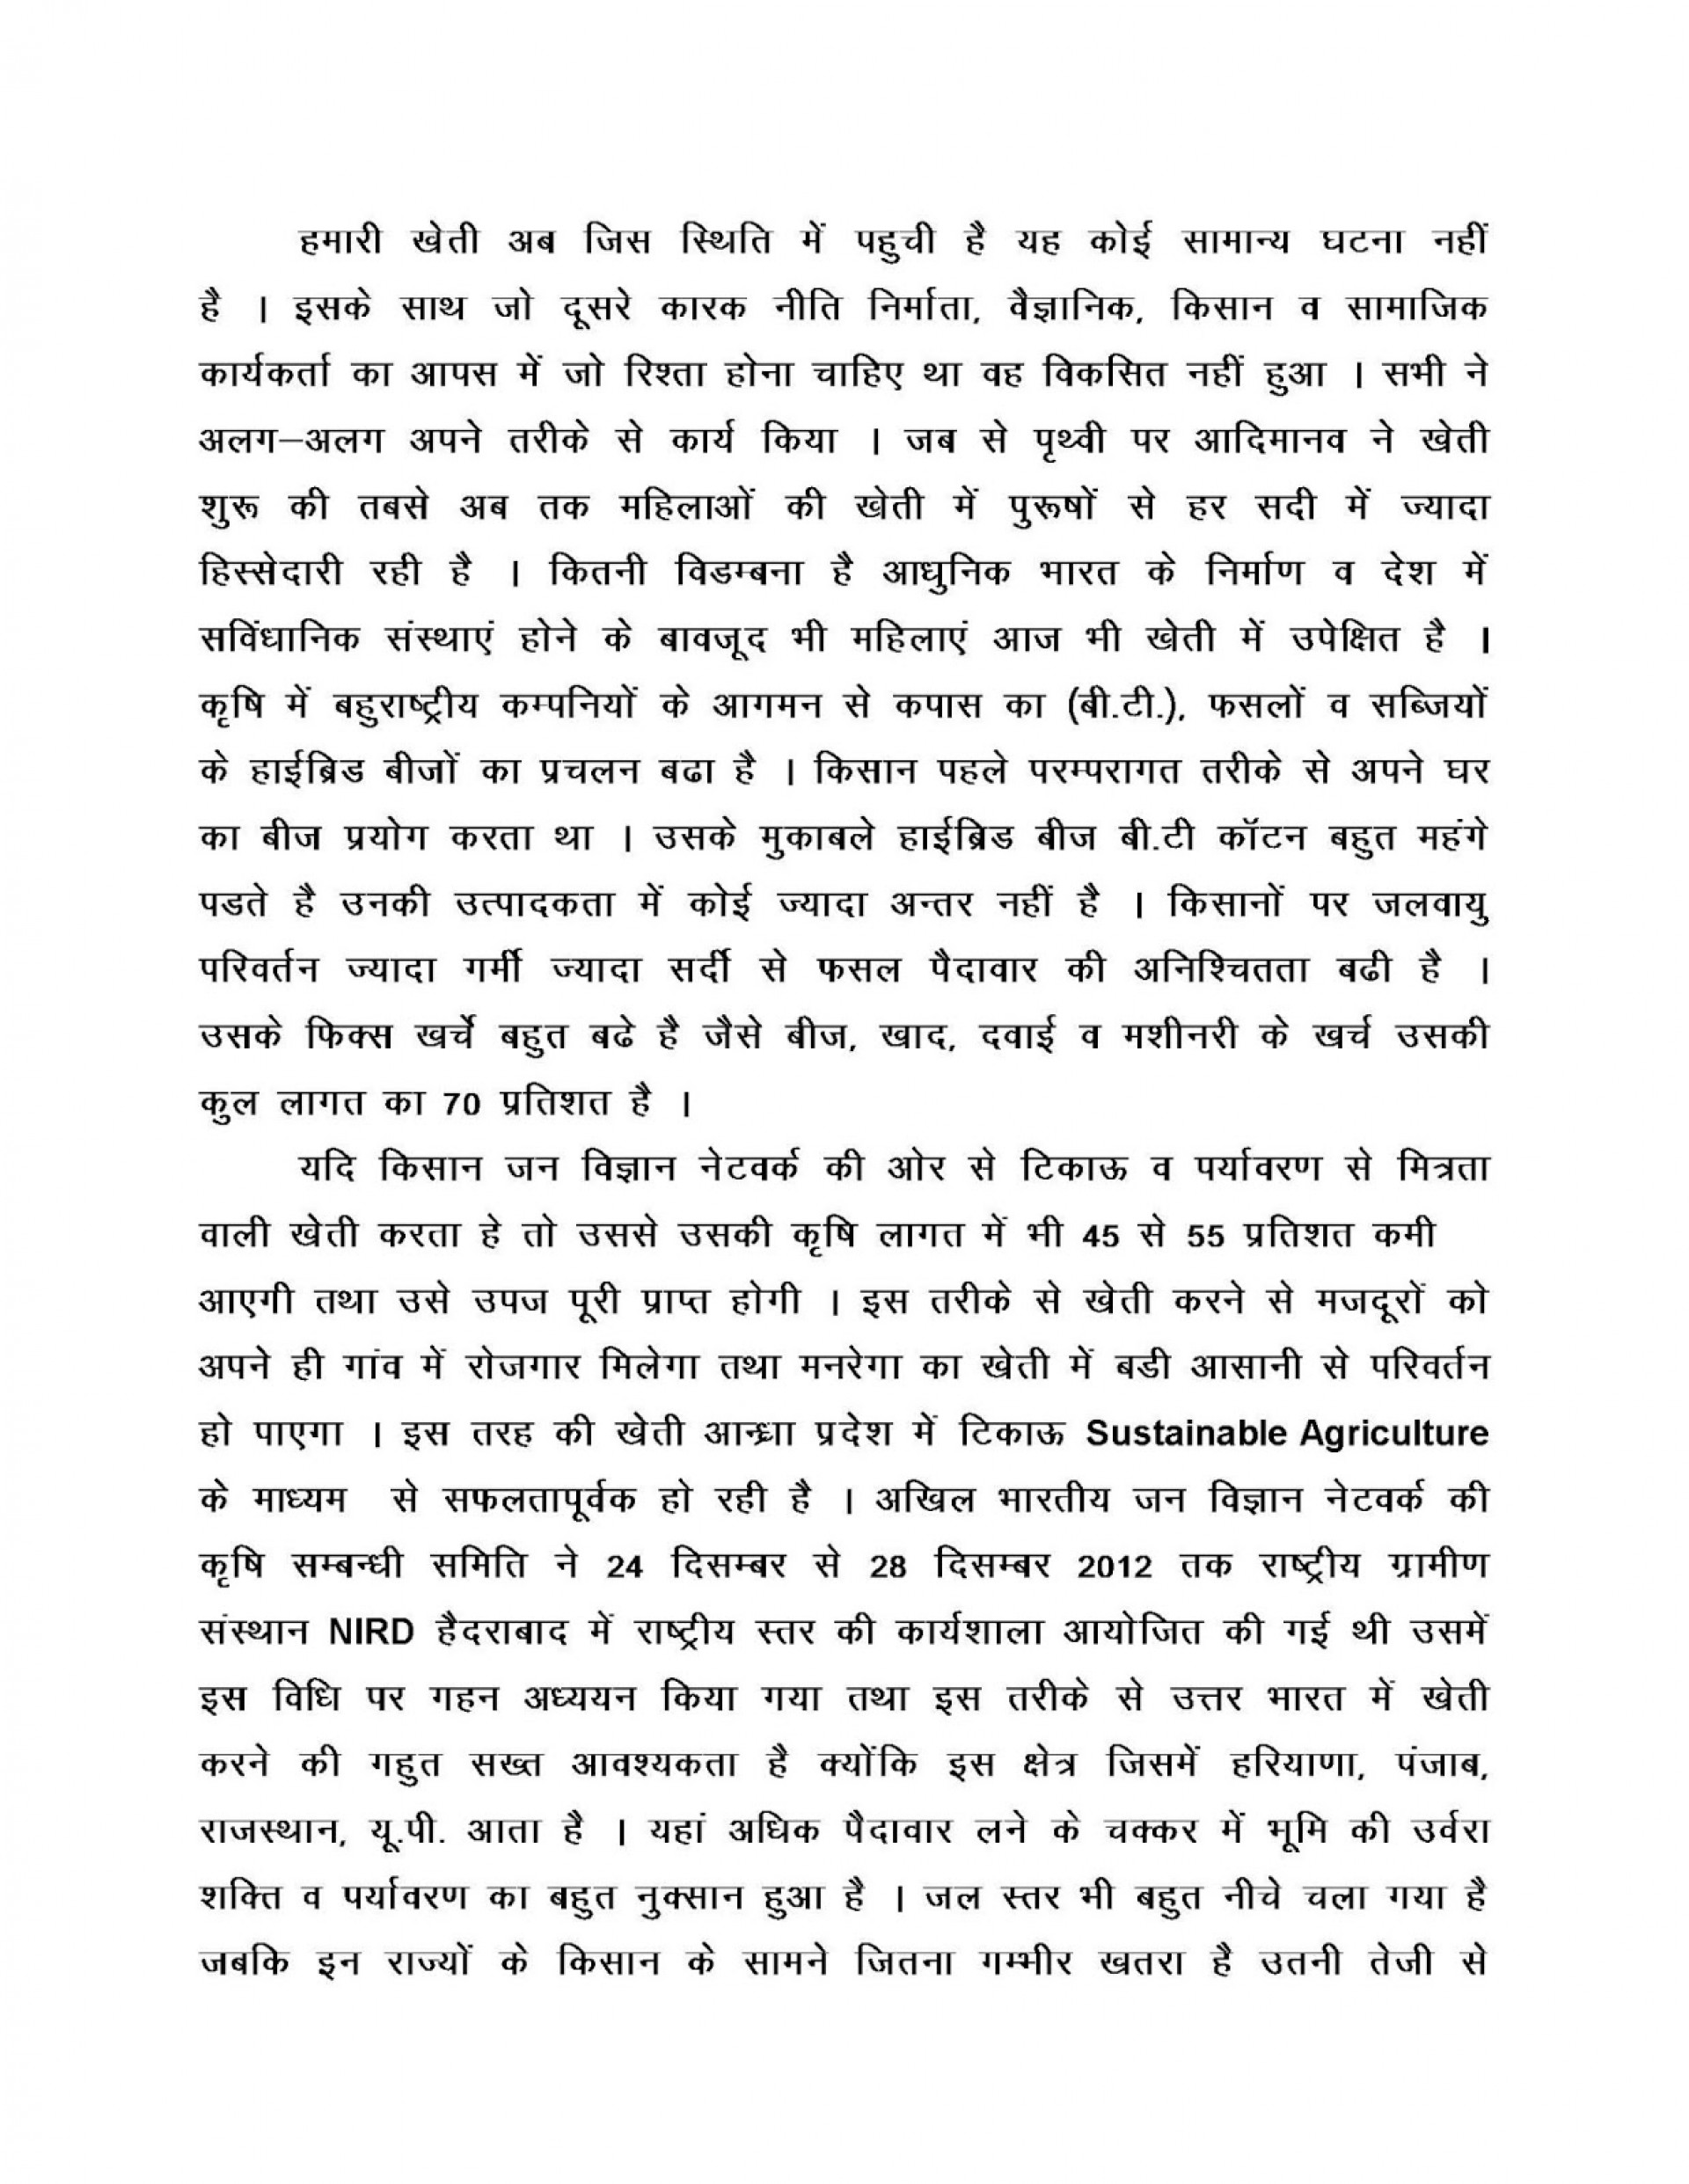 008 Essay Example Hindiworkdr Rajindersingh Page 3 Formidable Equality Conclusion Gender Wikipedia In Hindi Of Opportunity 1920